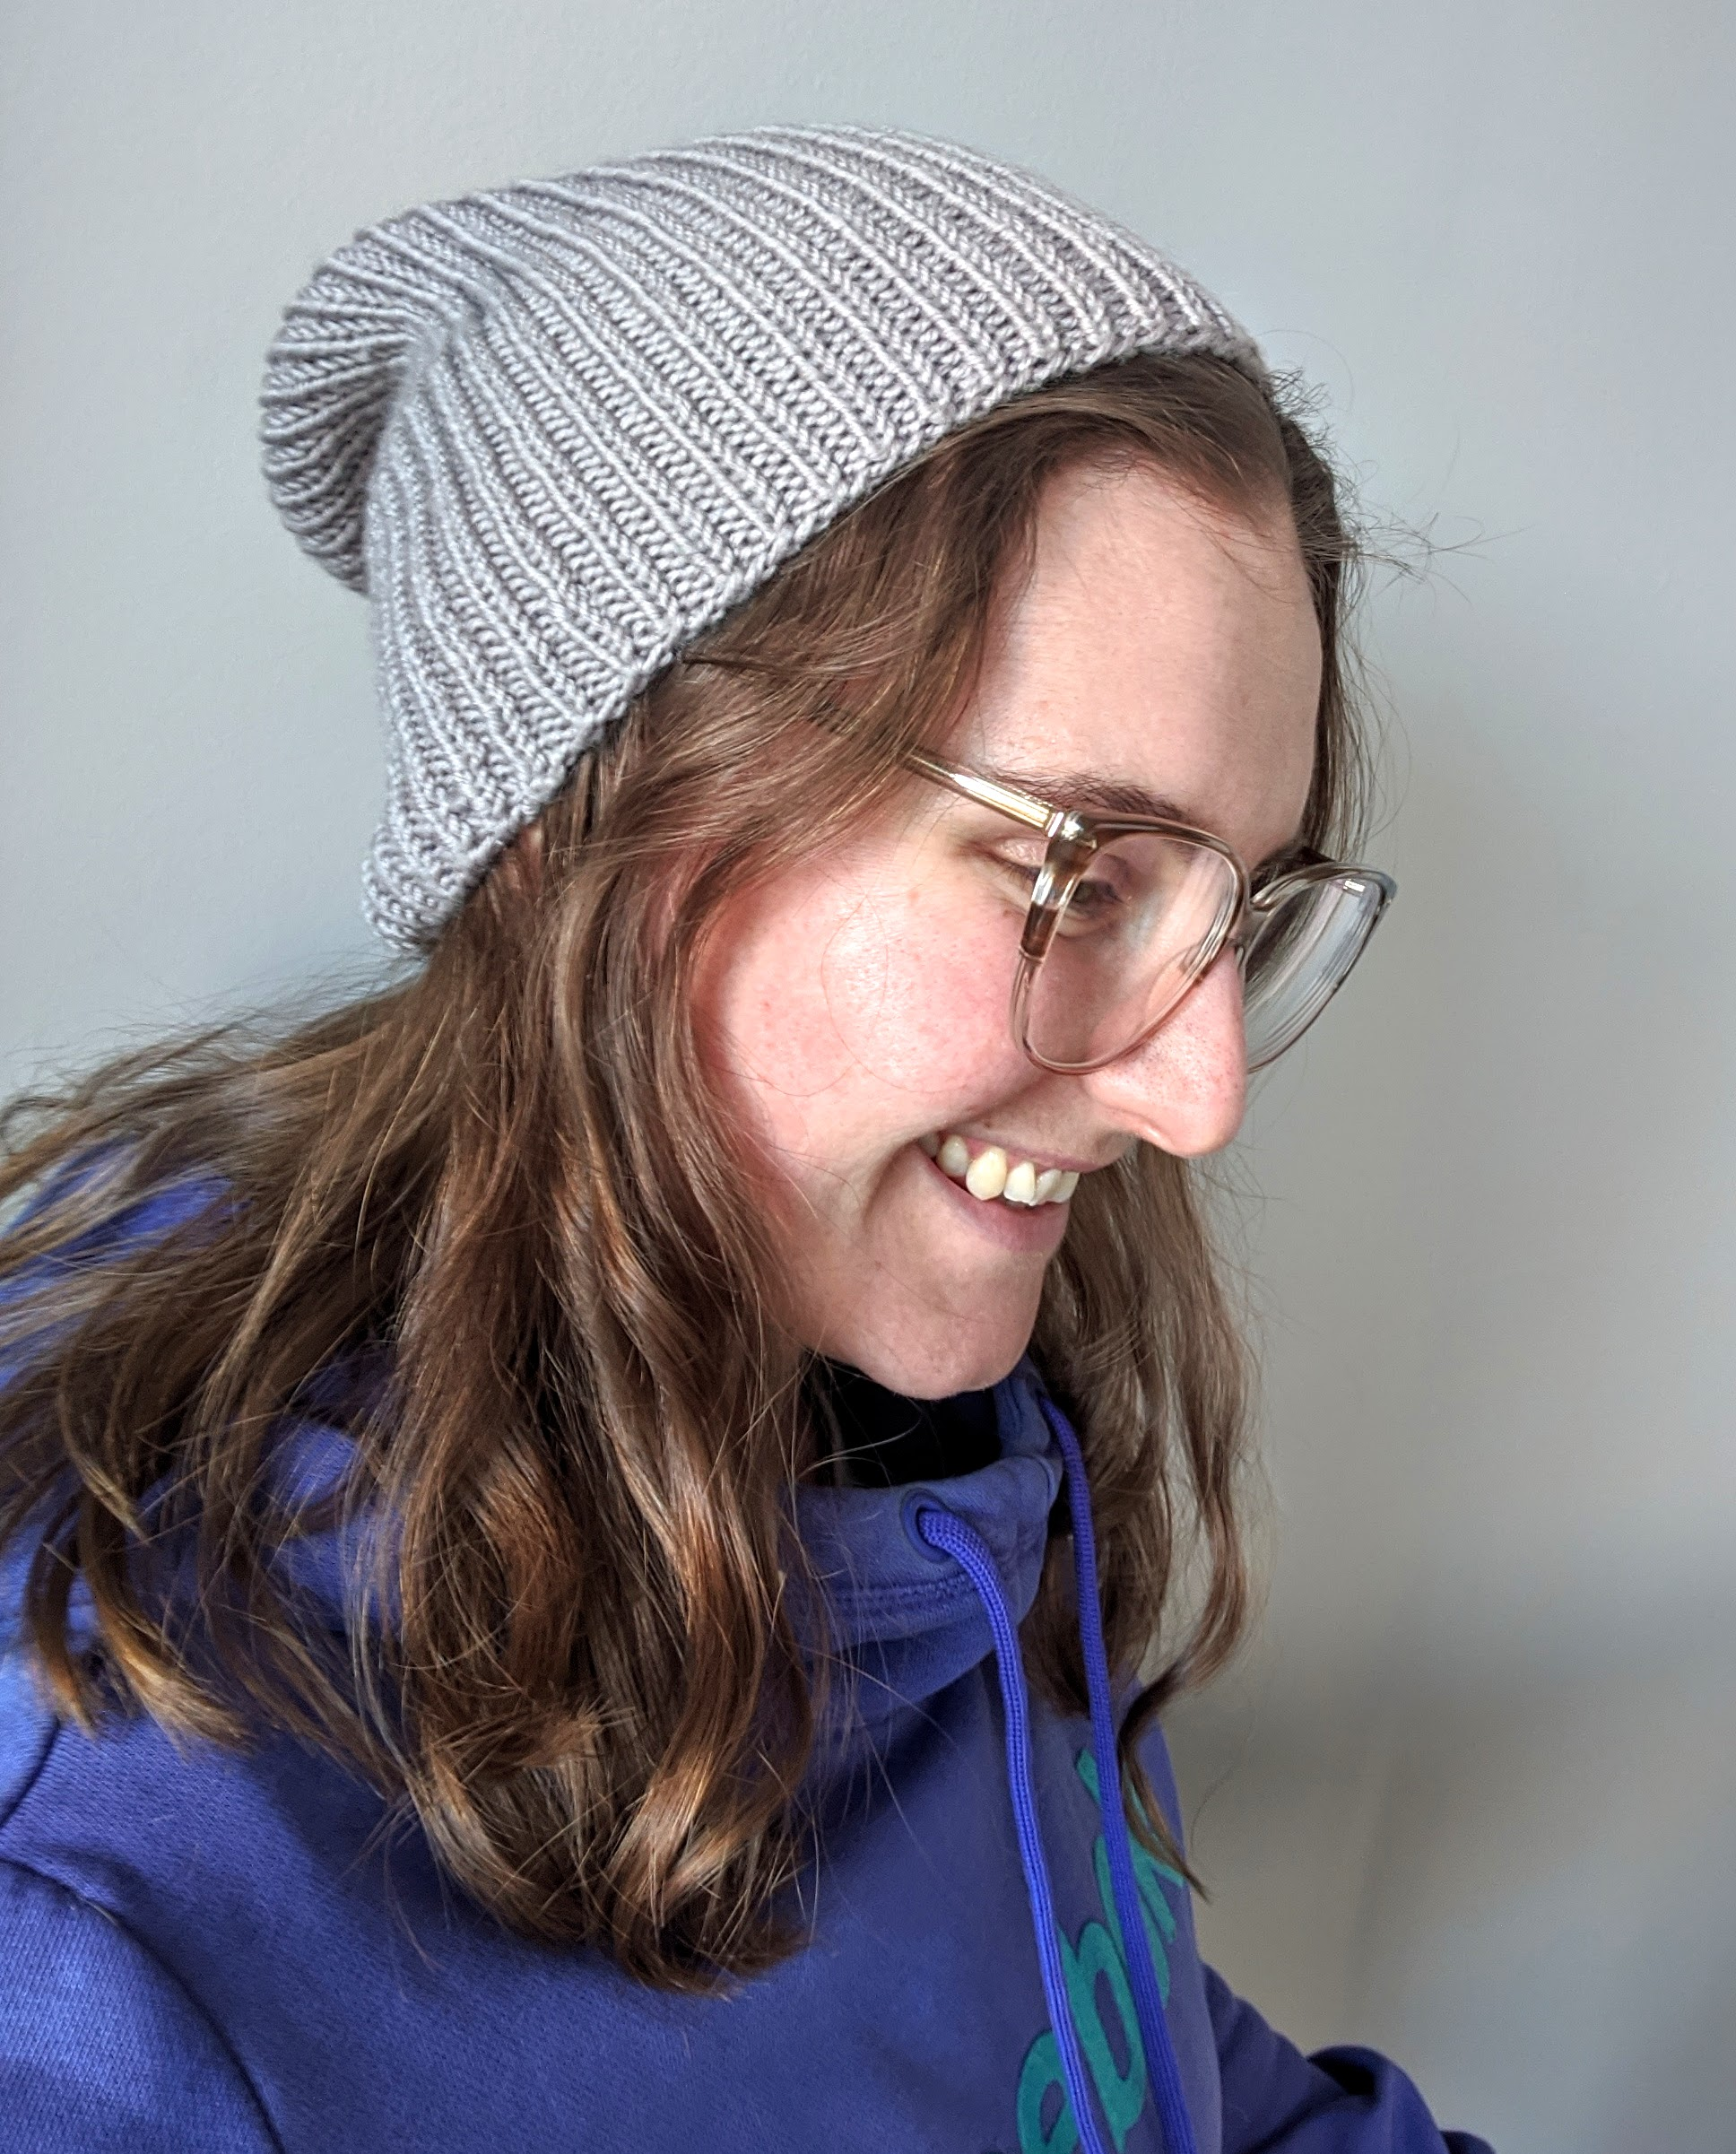 A young white woman with glasses on wears a great ribbed knit hat